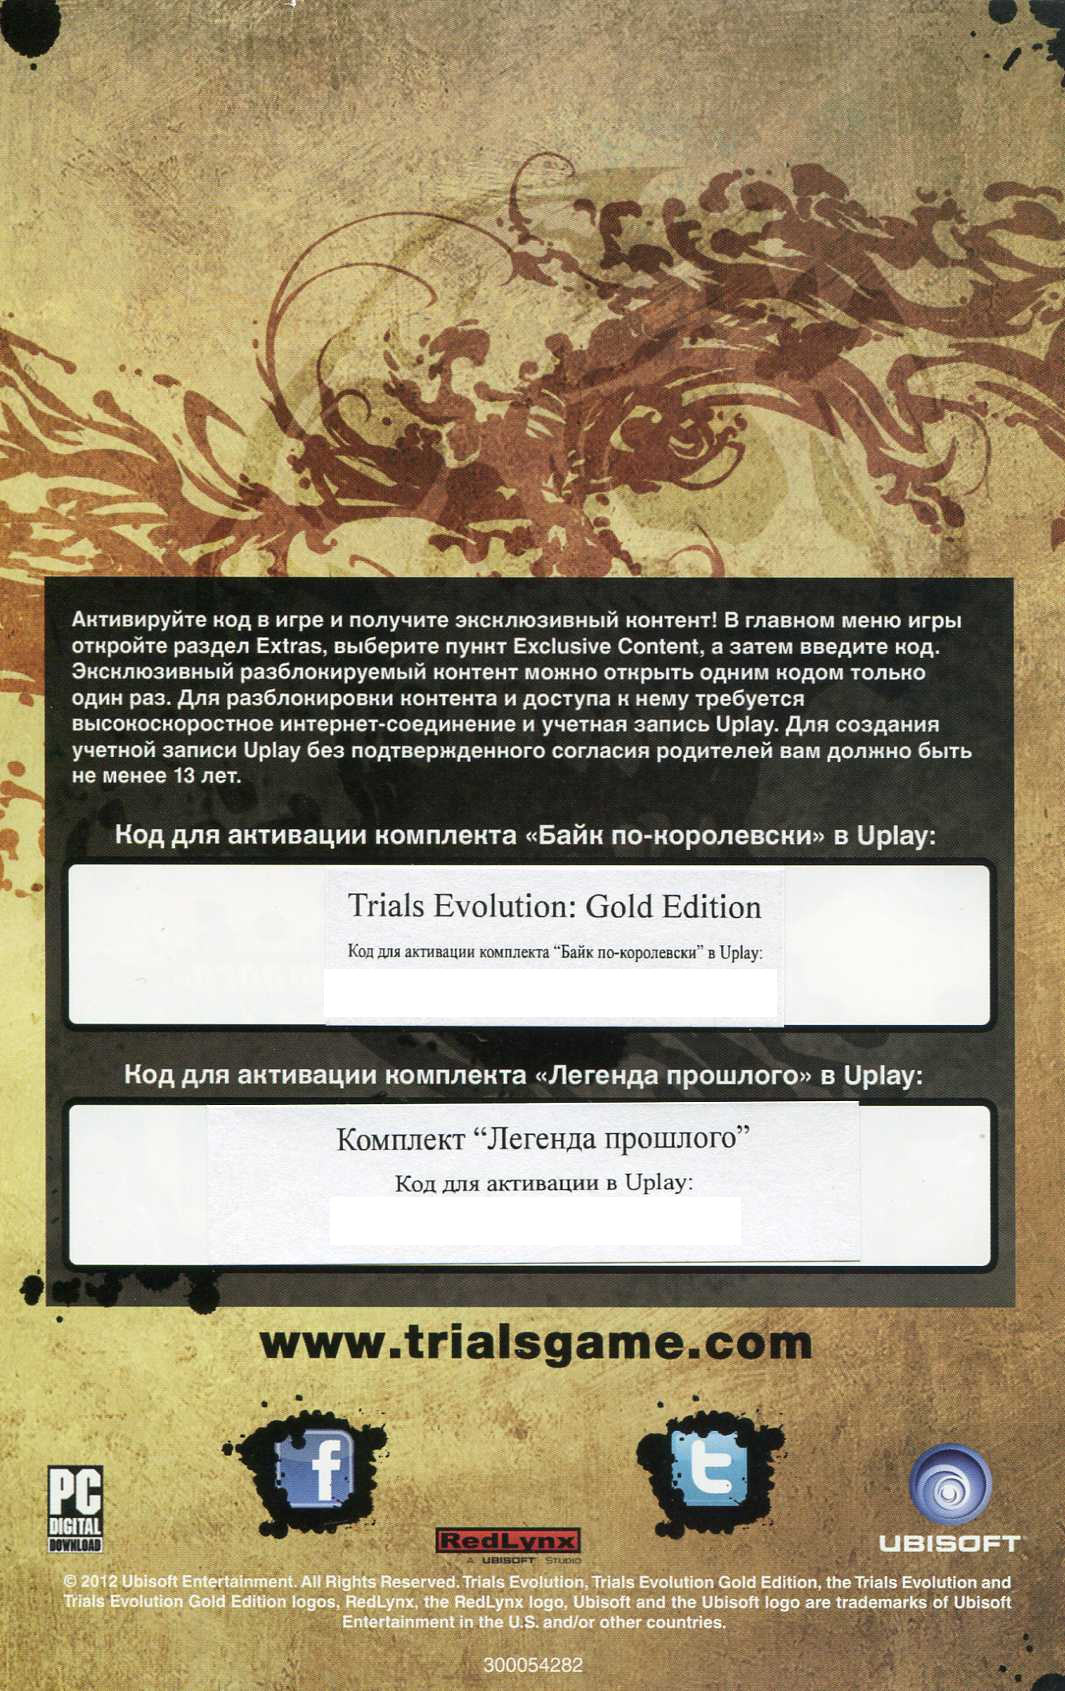 Trials Evolution Gold Edition (The key to the new disc)